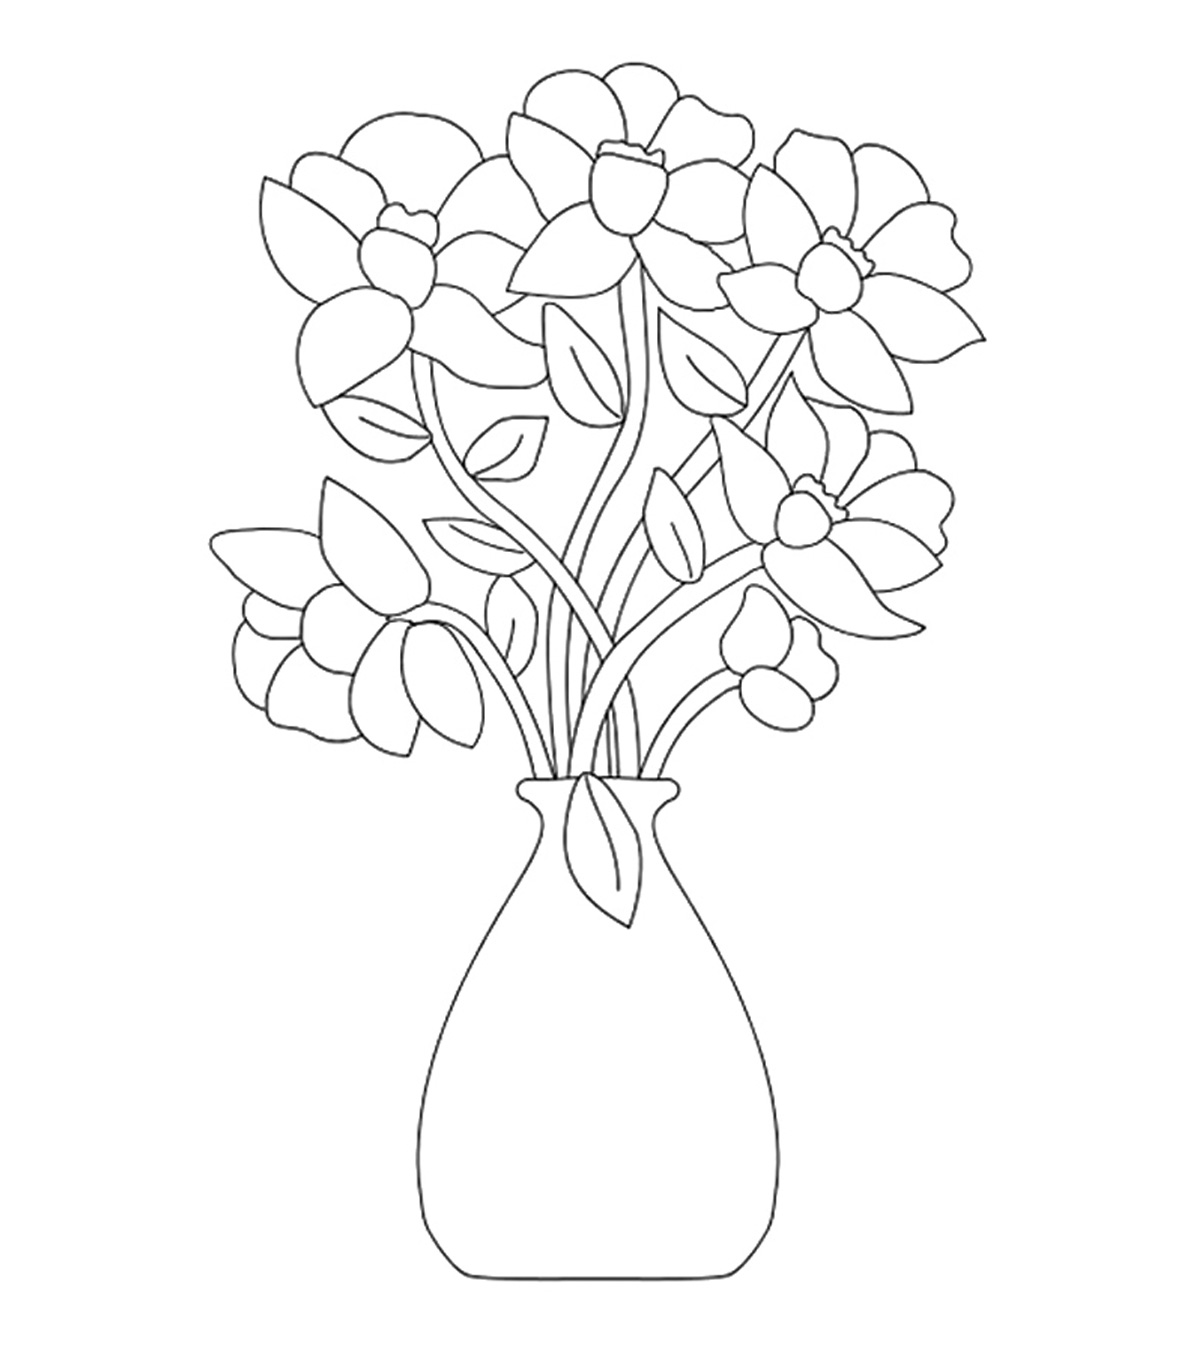 hight resolution of top 47 free printable flowers coloring pages online diagram of flower bunch